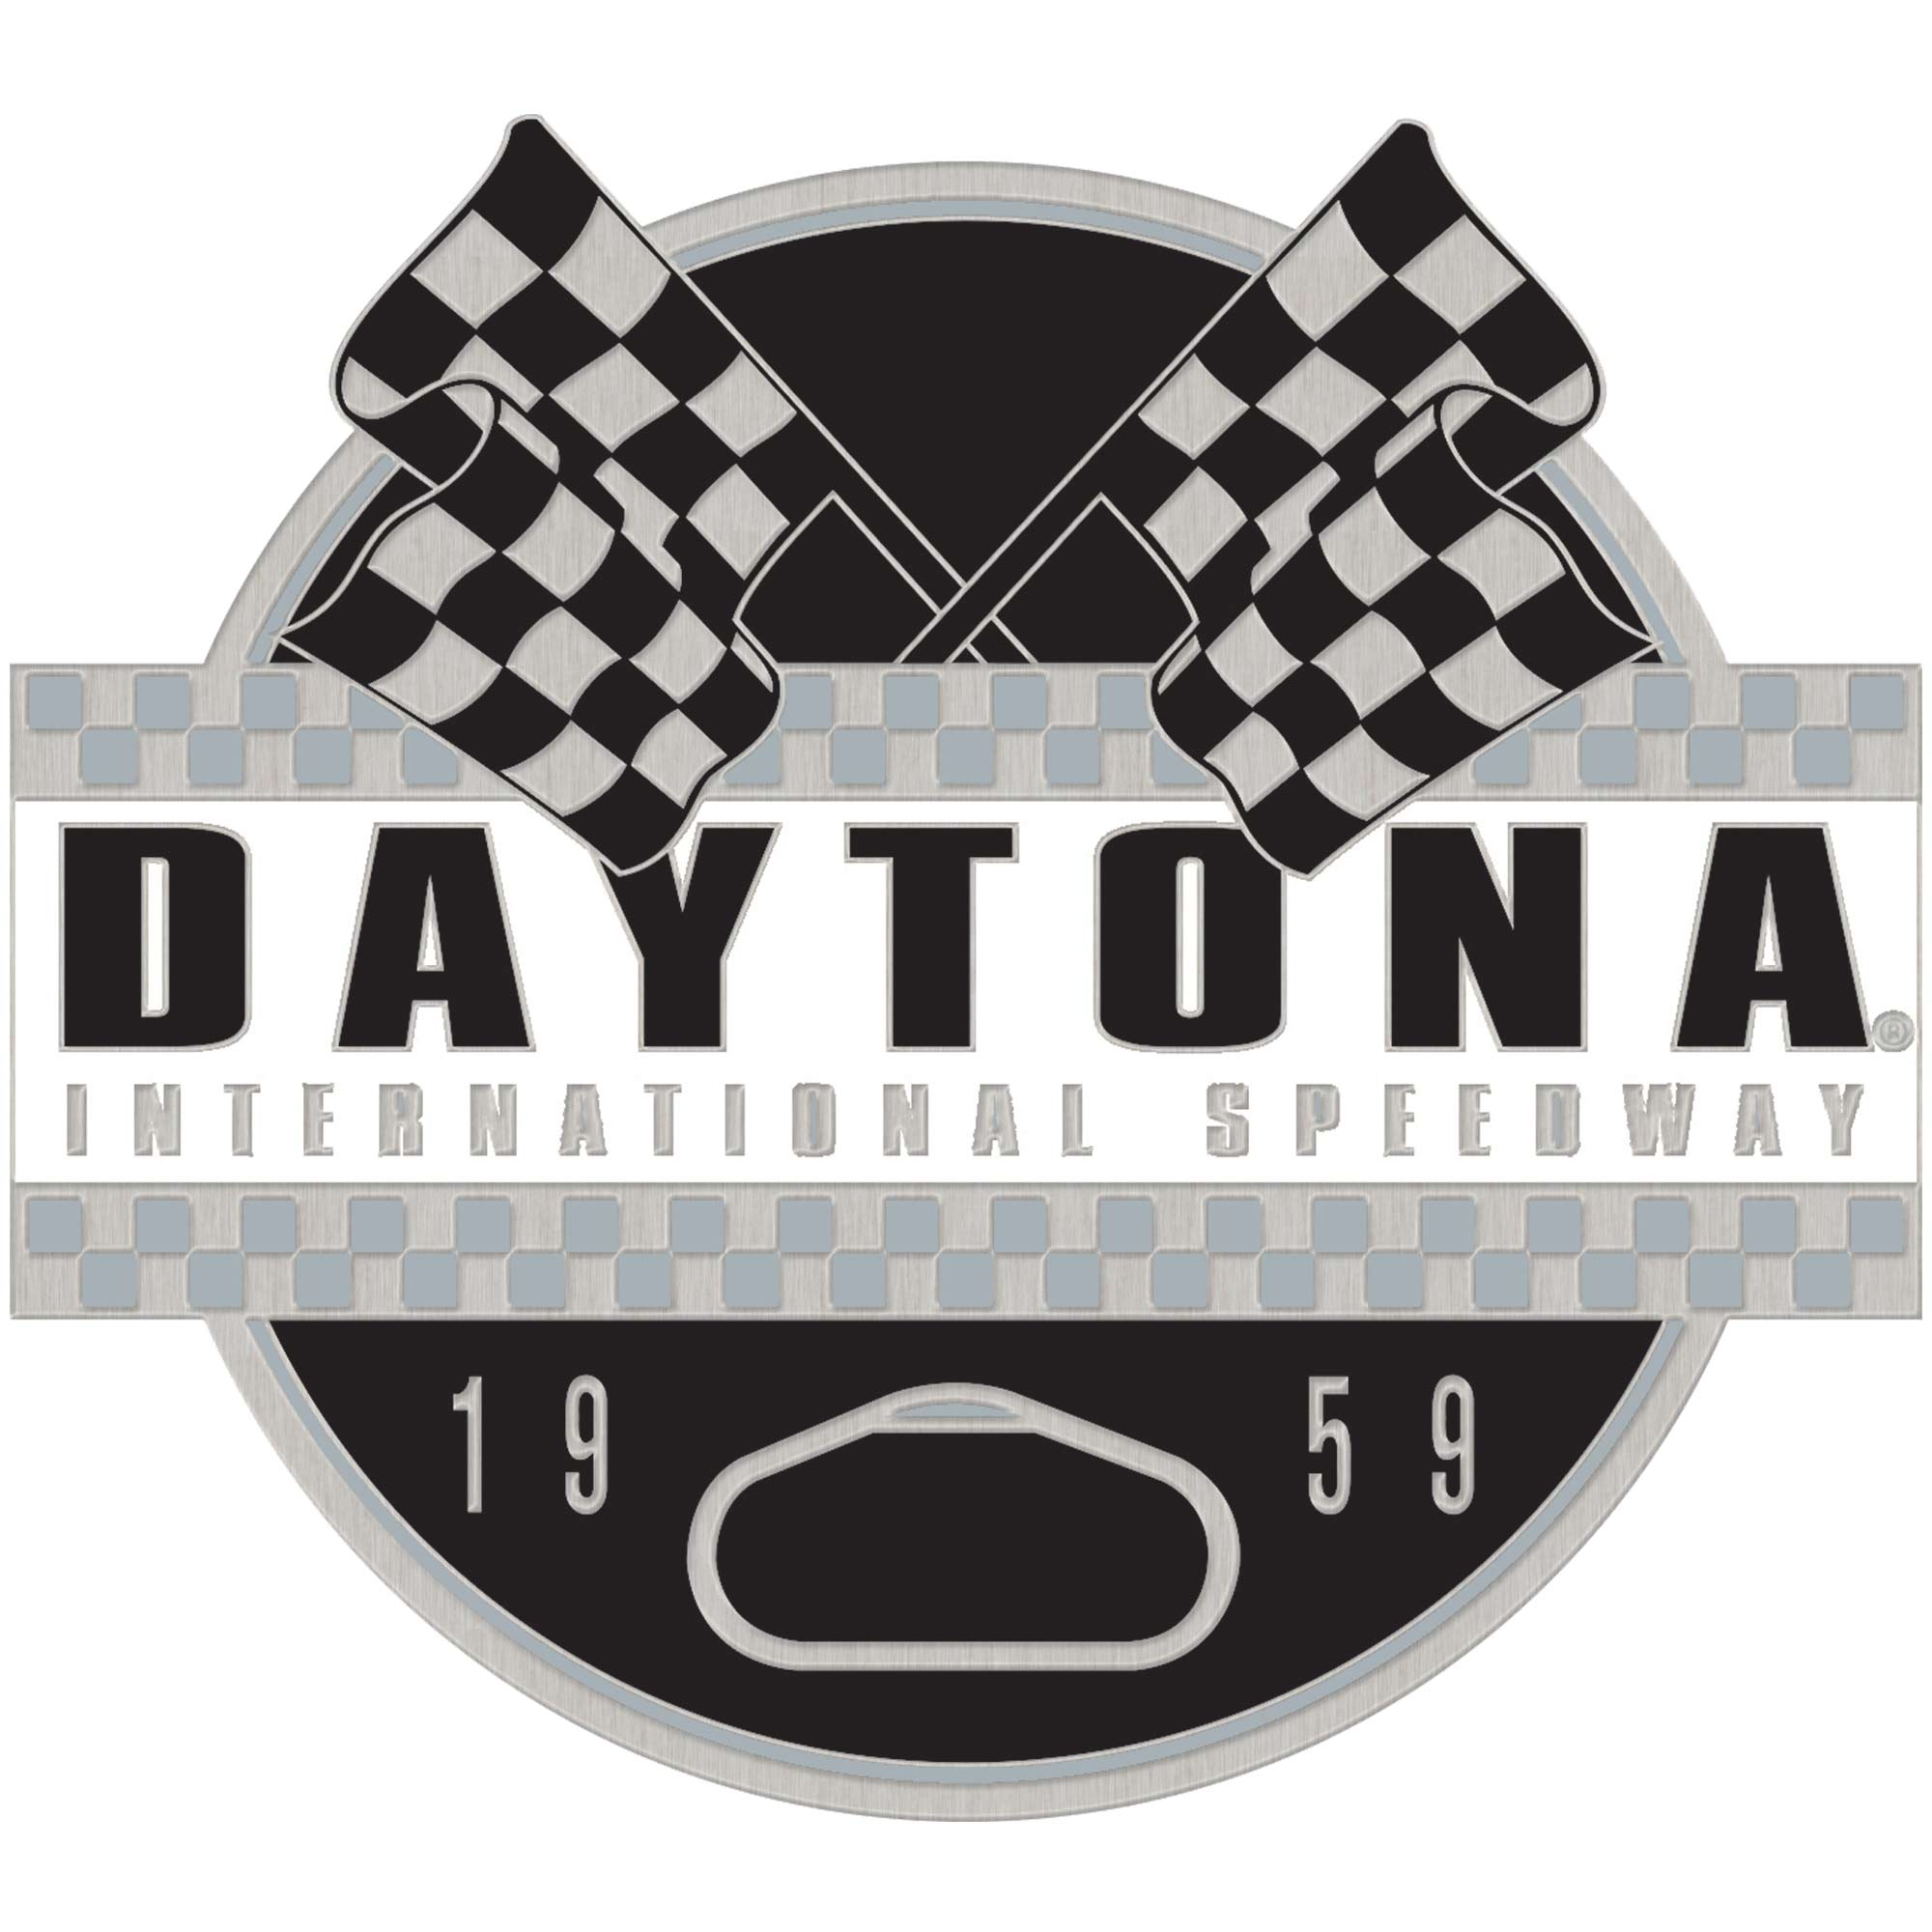 Daytona International Speedway WinCraft Collector Pin - No Size